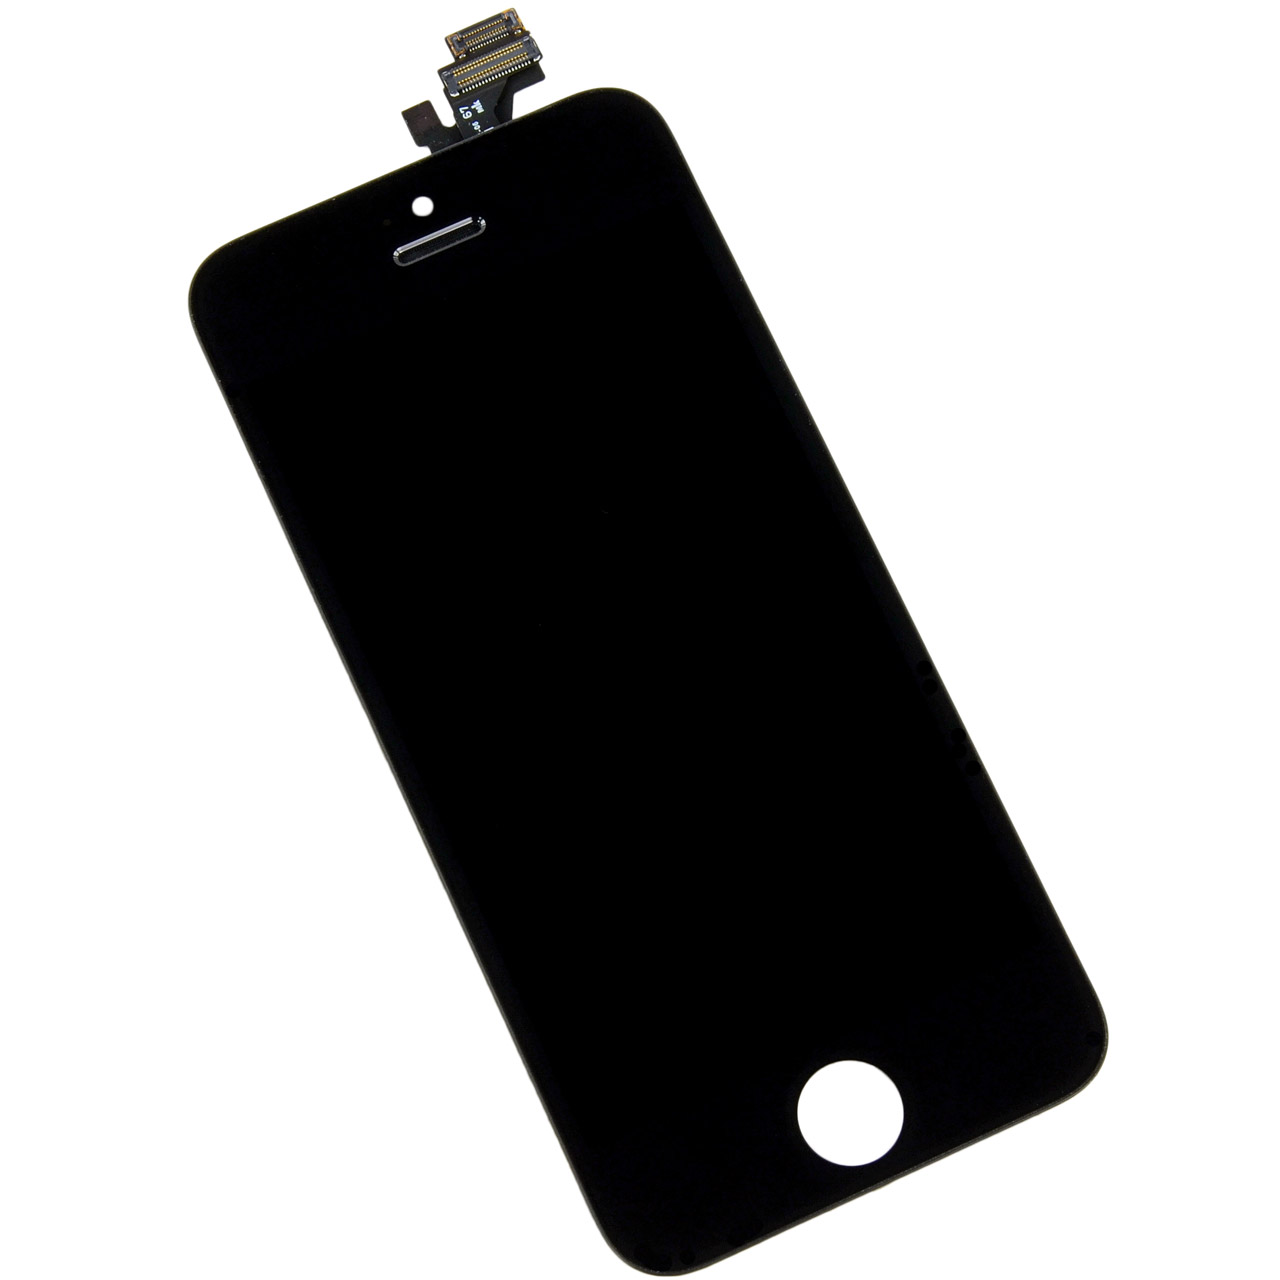 iPhone 5 scherm / display - afbeelding 1